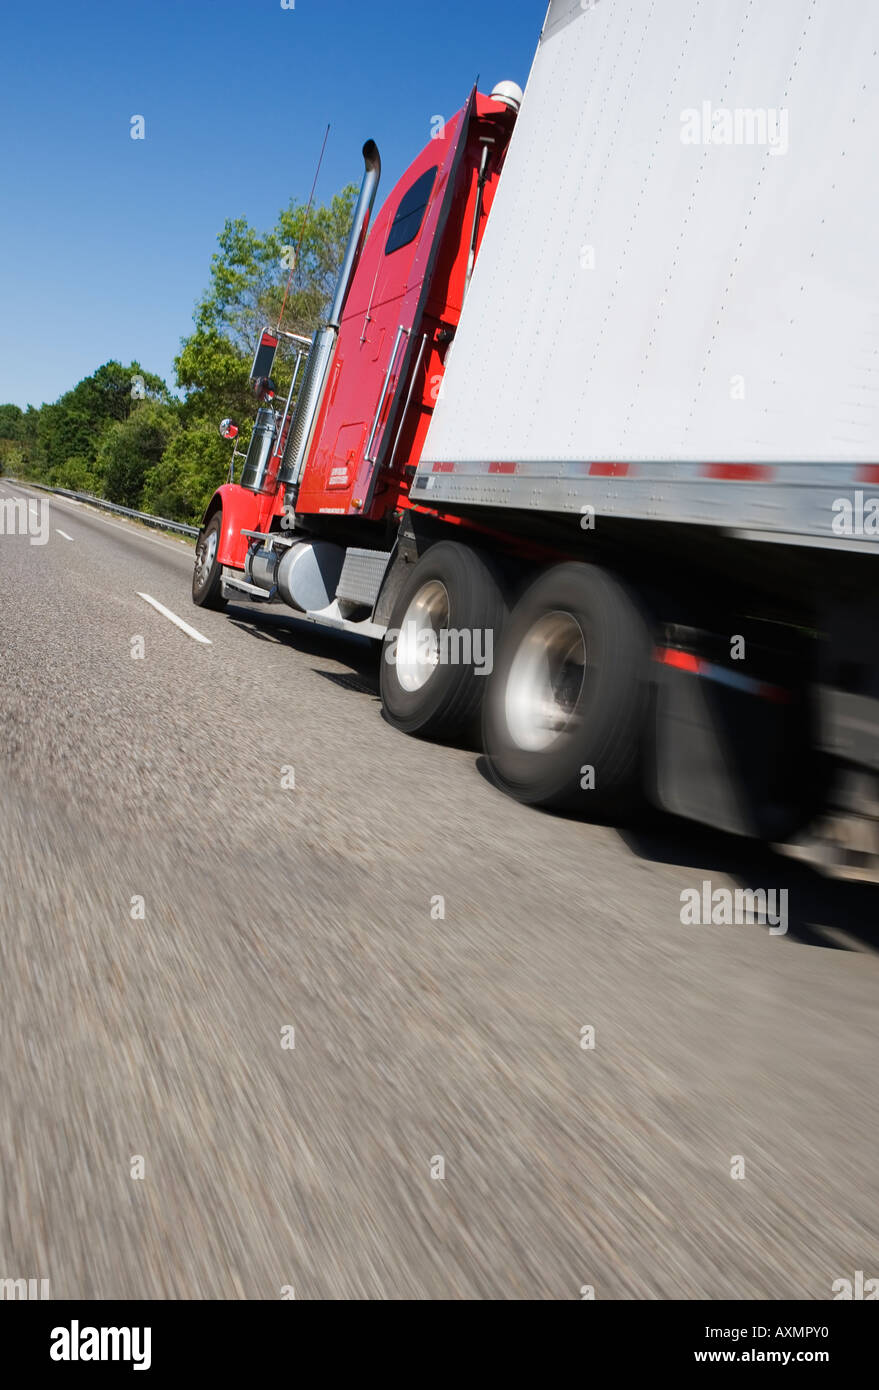 Side angle view of tractor trailer on highway - Stock Image